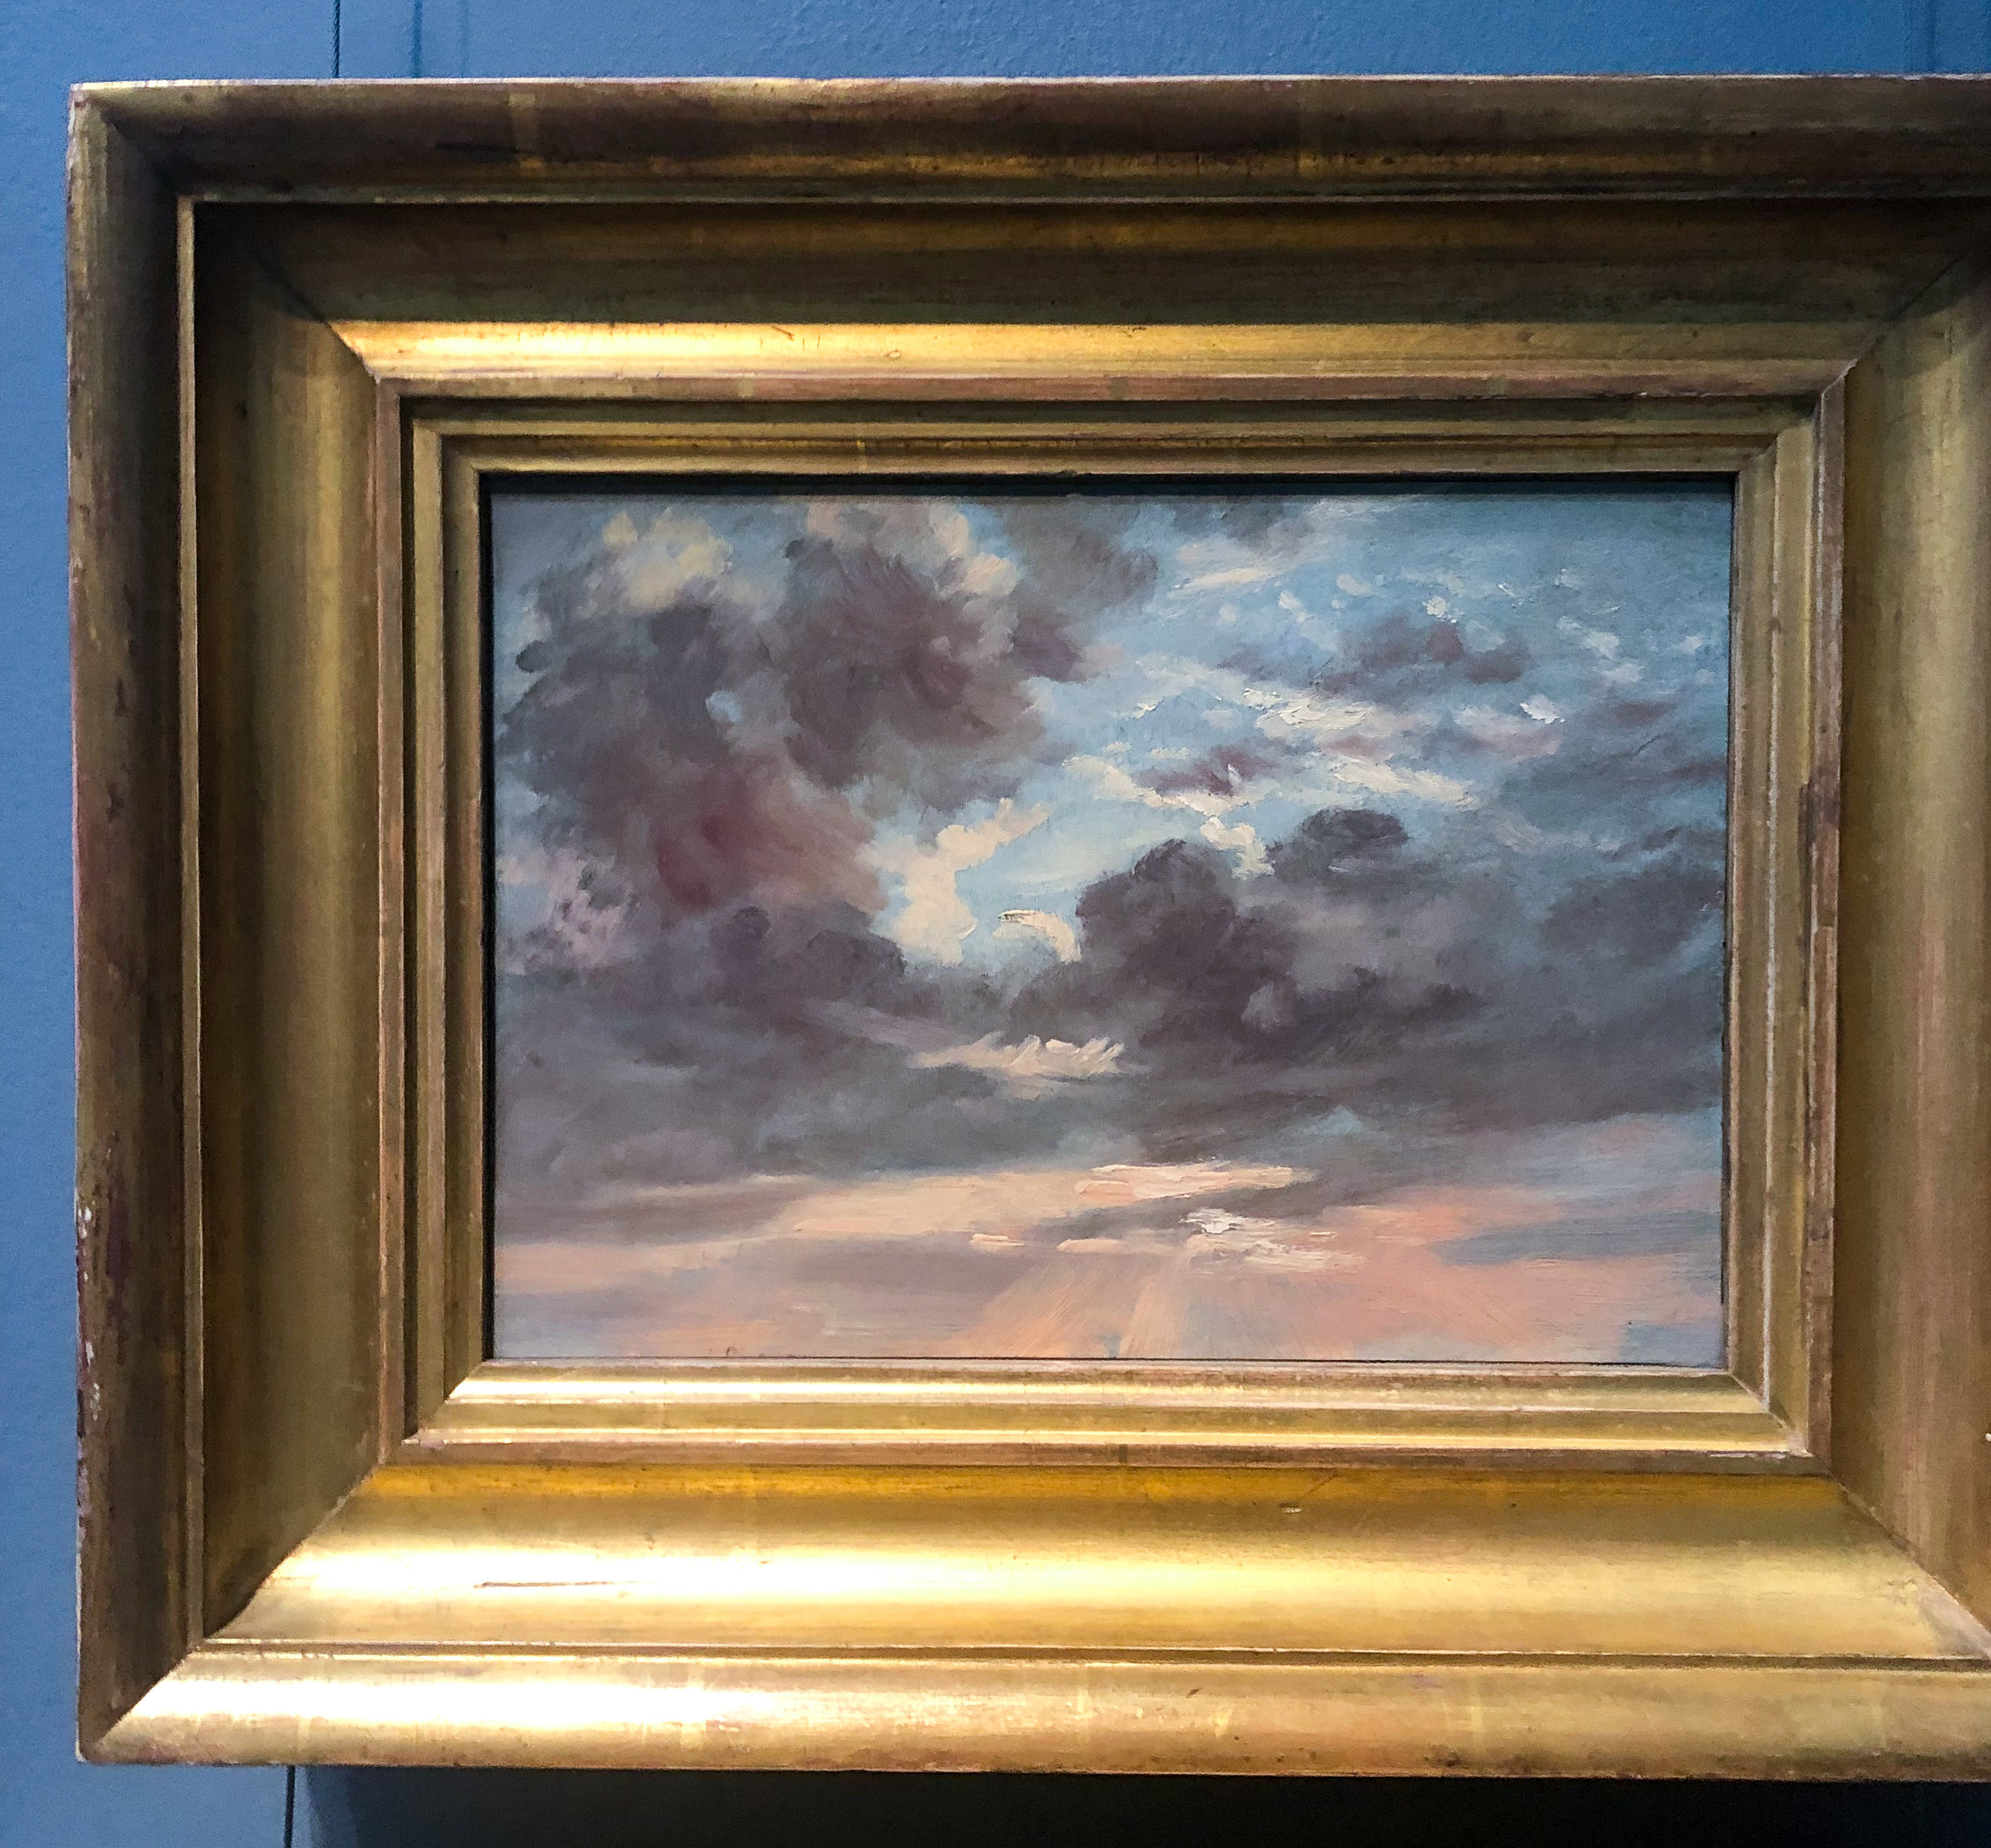 John Constable's Cloud Study: Stormy Sunset